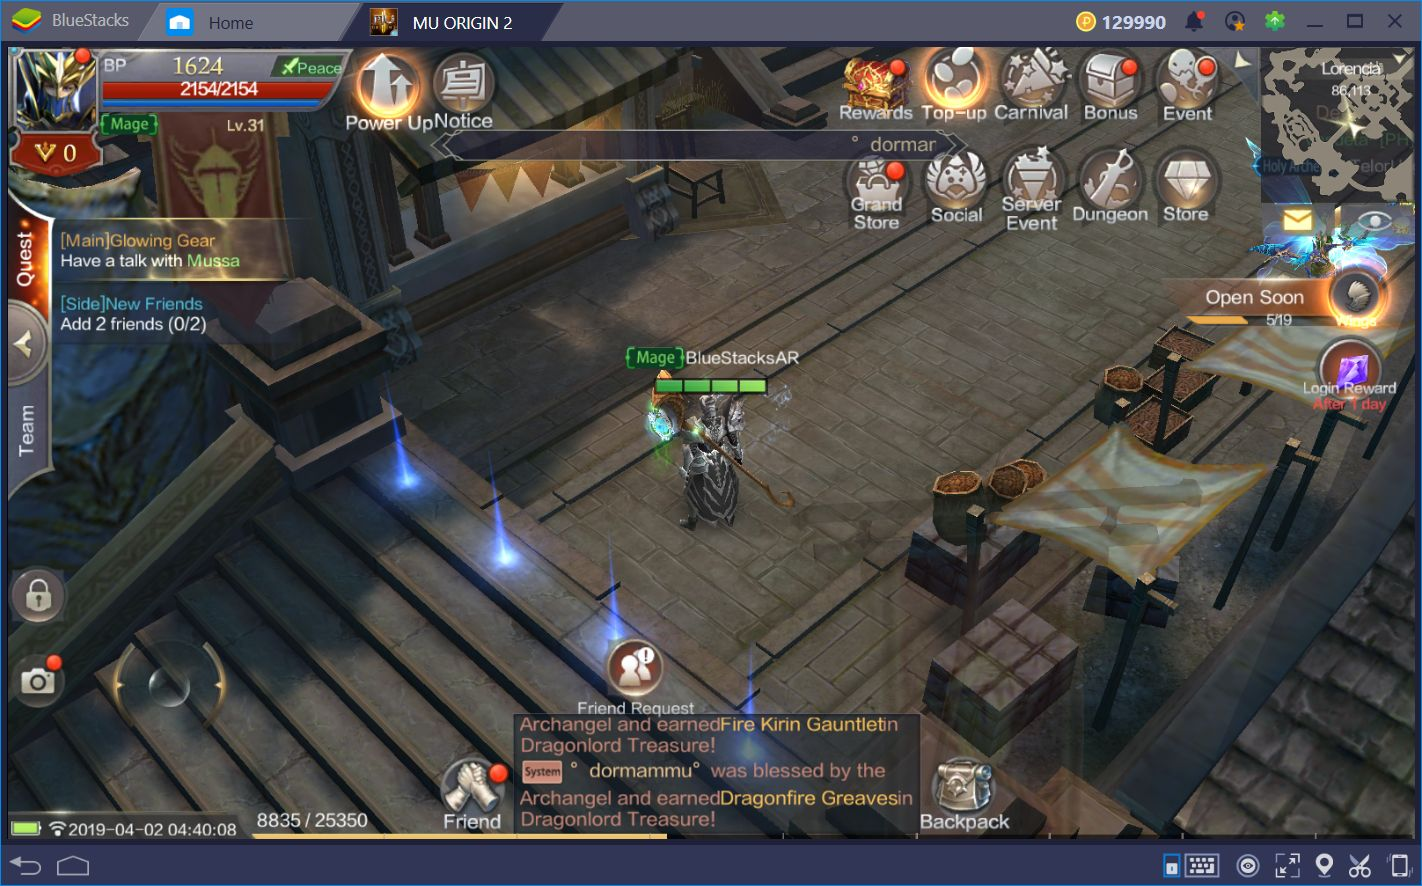 MU Origin 2—The Famous MMORPG Gets a New Look! | BlueStacks